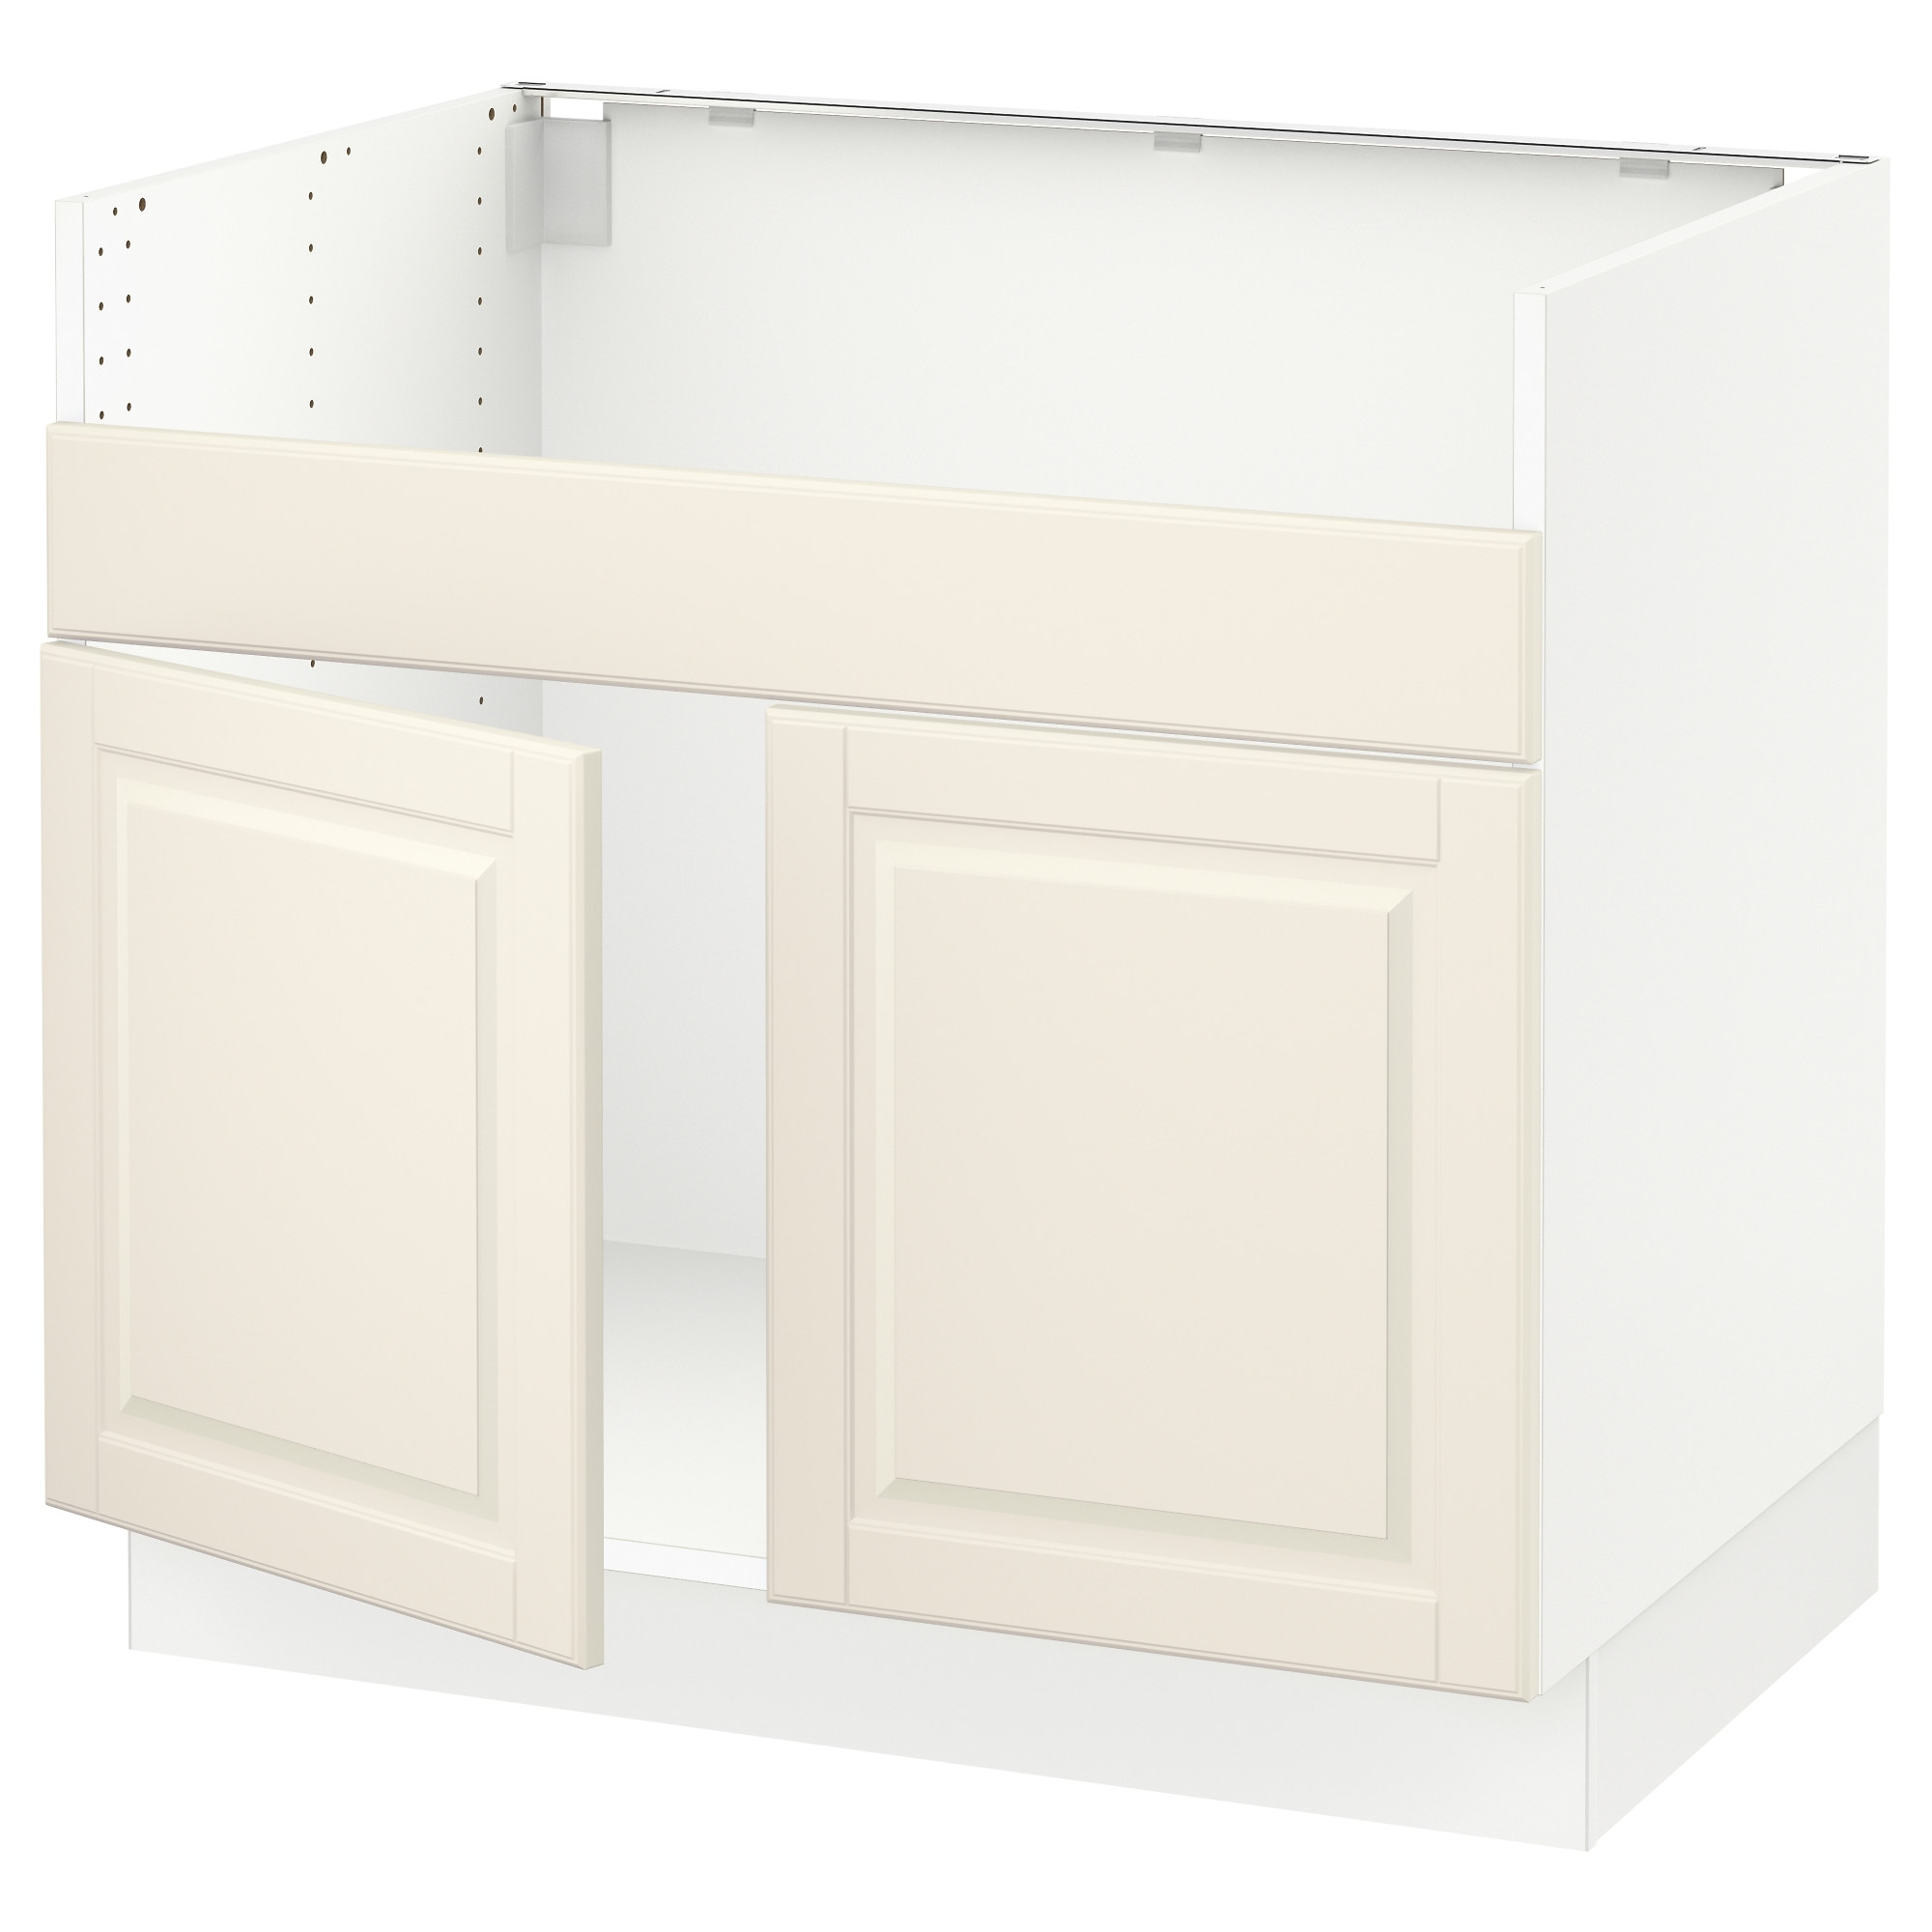 Superb SEKTION Base Cabinet F/DOMSJÖ 2 Bowl Sink   White, Bodbyn Gray   IKEA